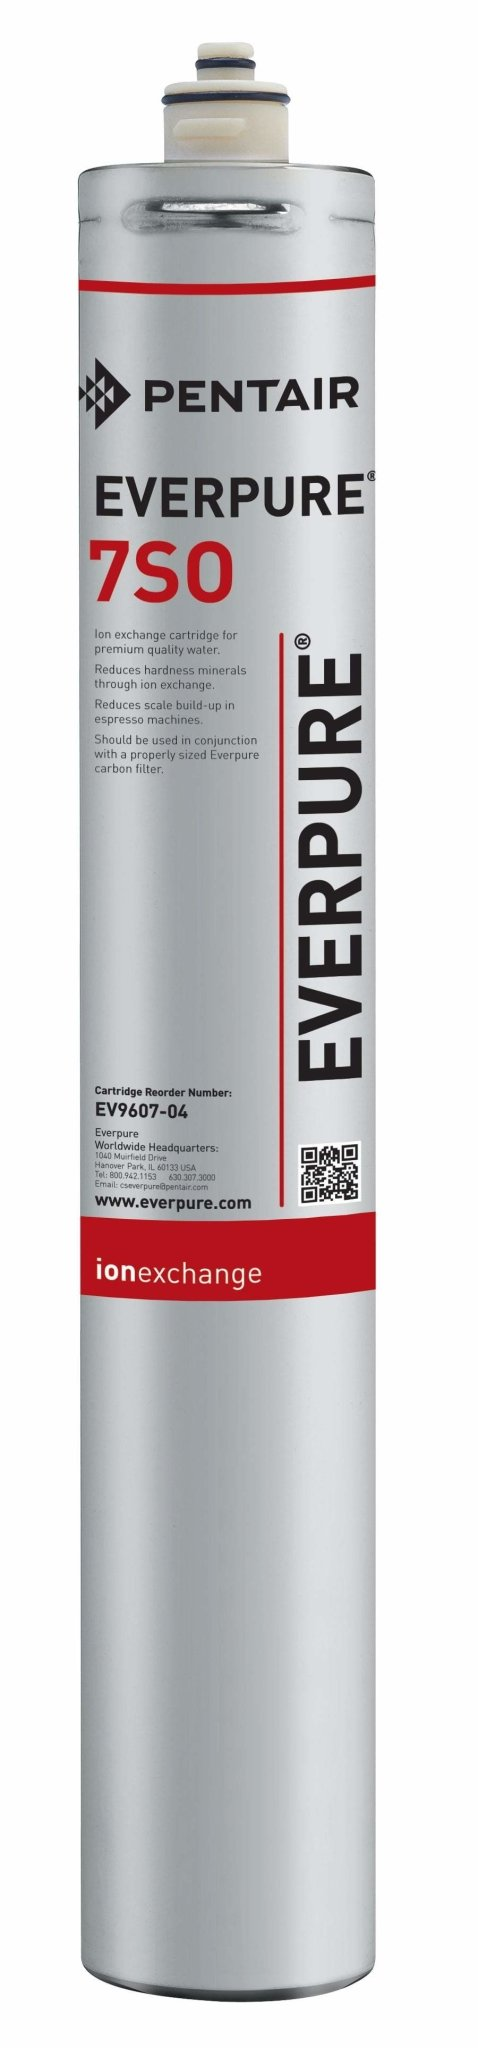 Everpure 7SO Cartridge EV9607-04 - Efilters.ca